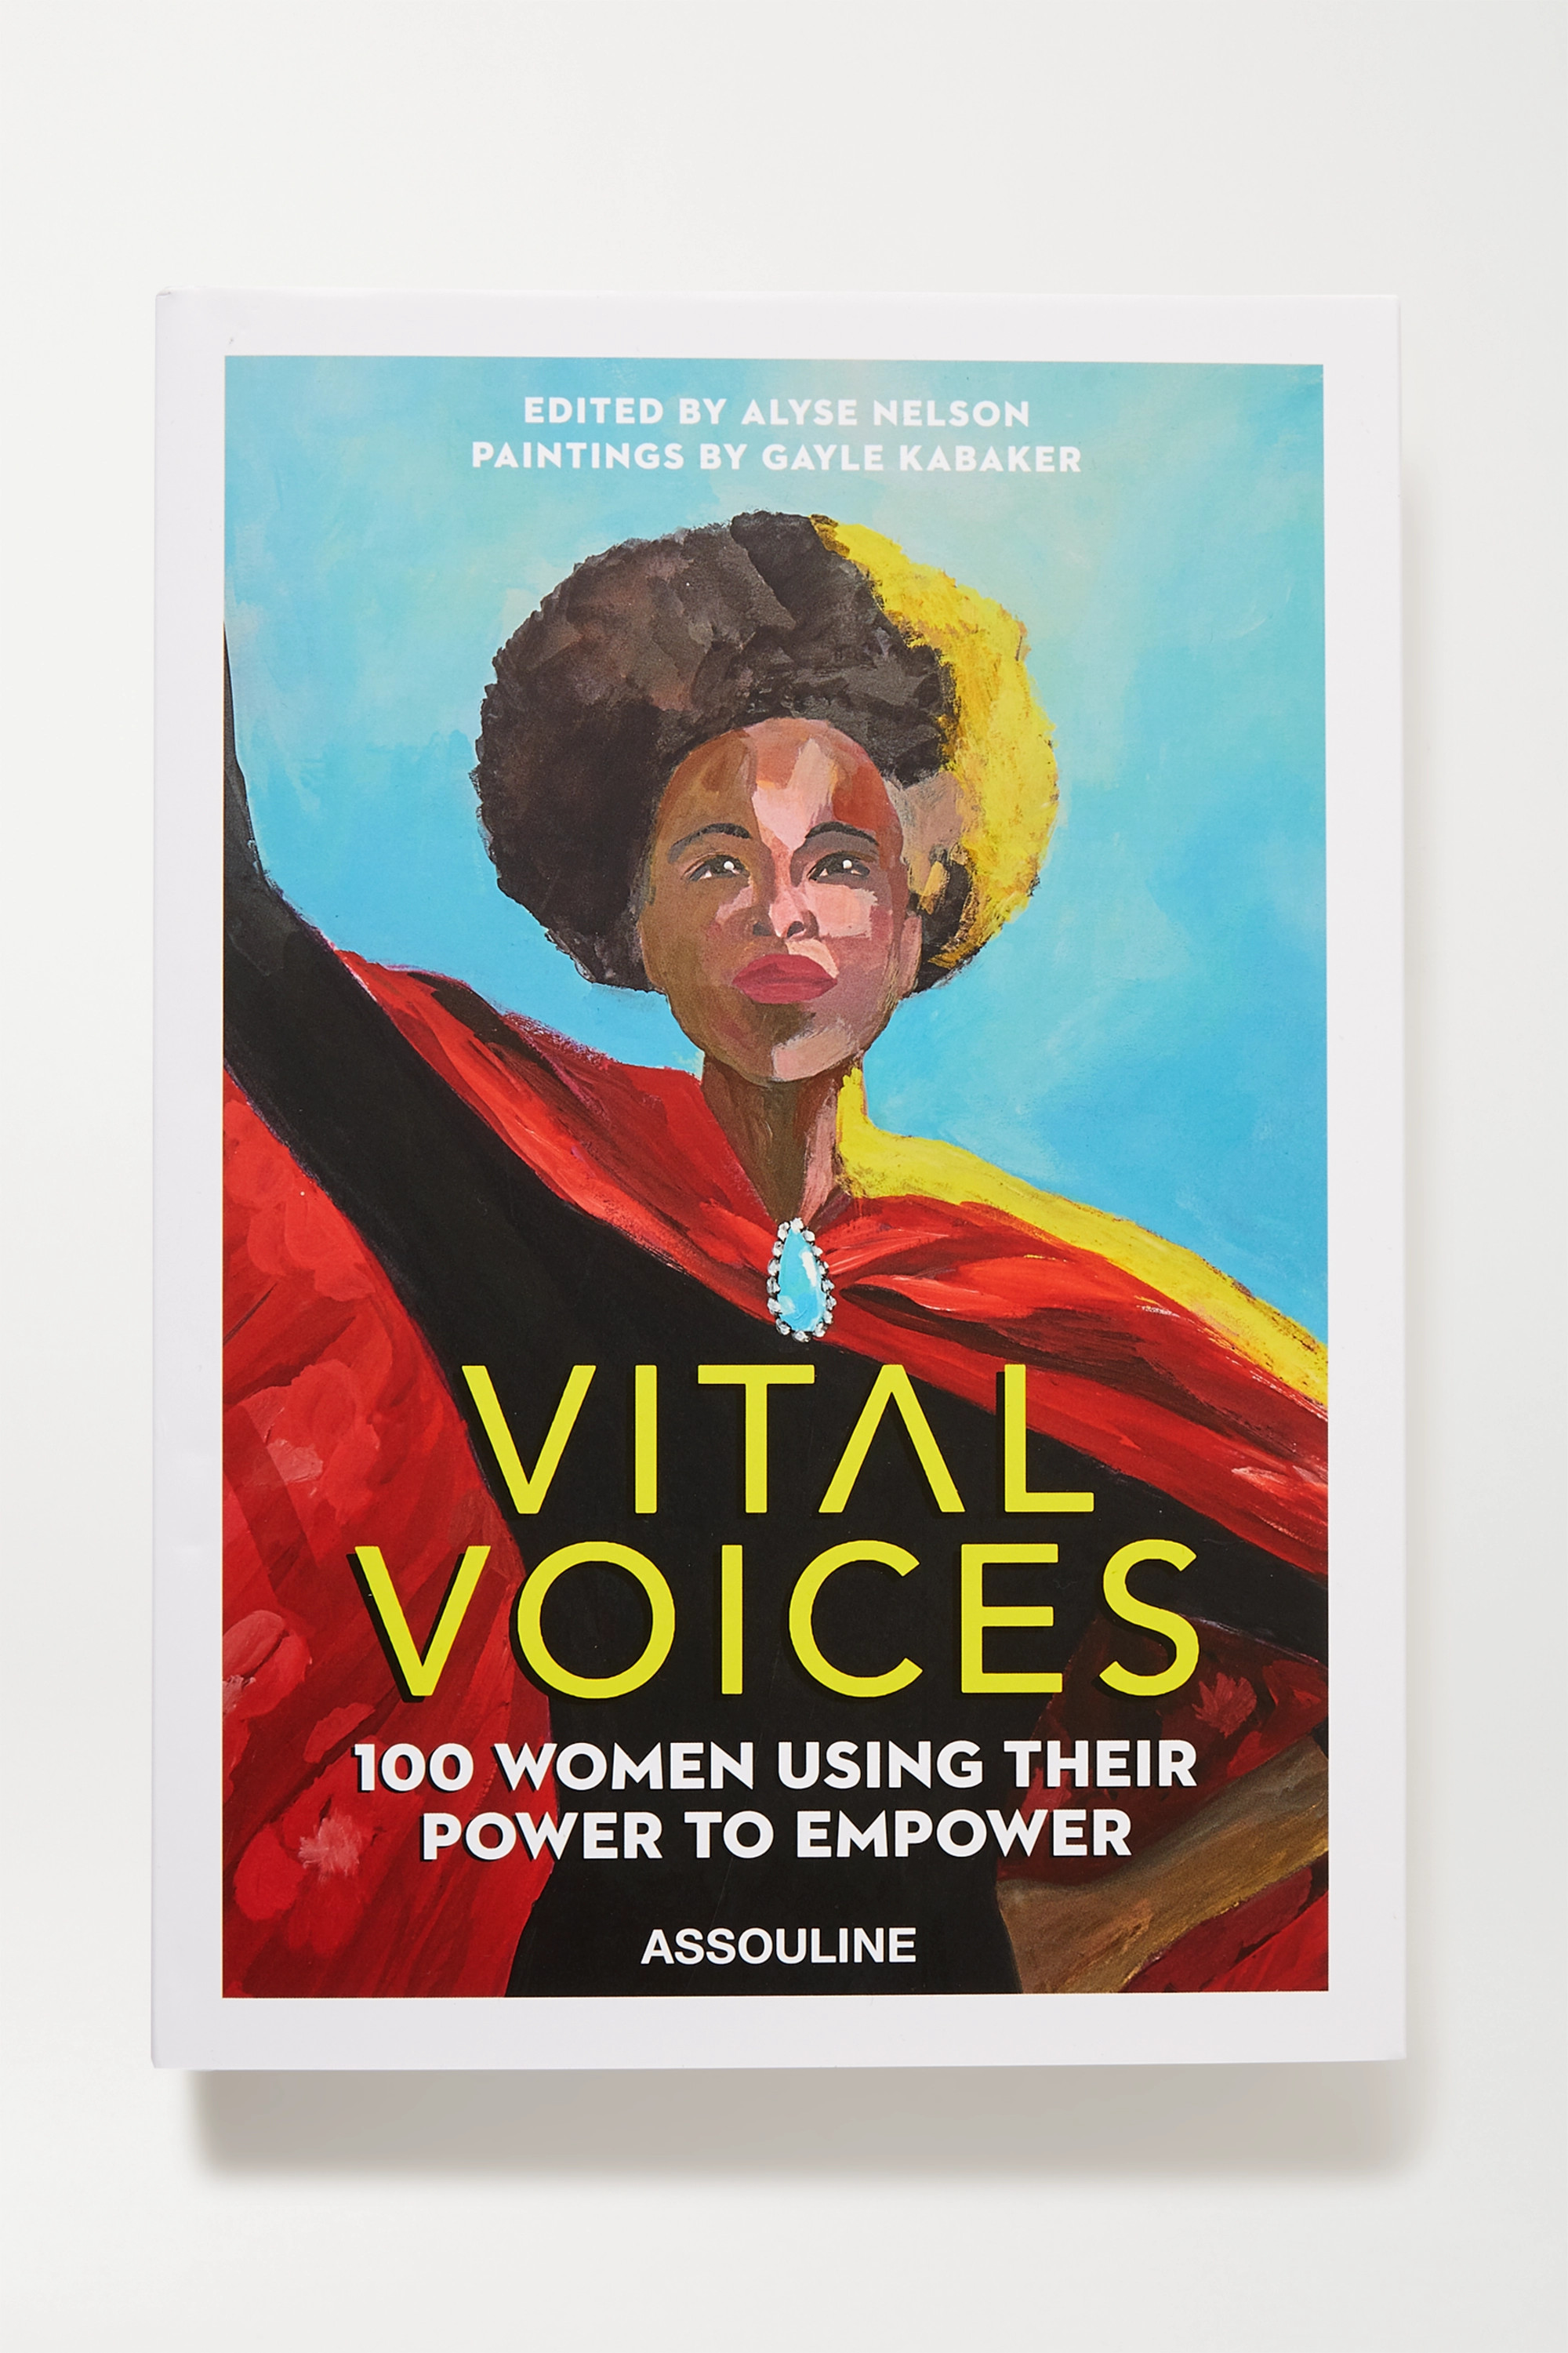 Assouline Vital Voices by Alyse Nelson and Gayle Kabaker hardcover book